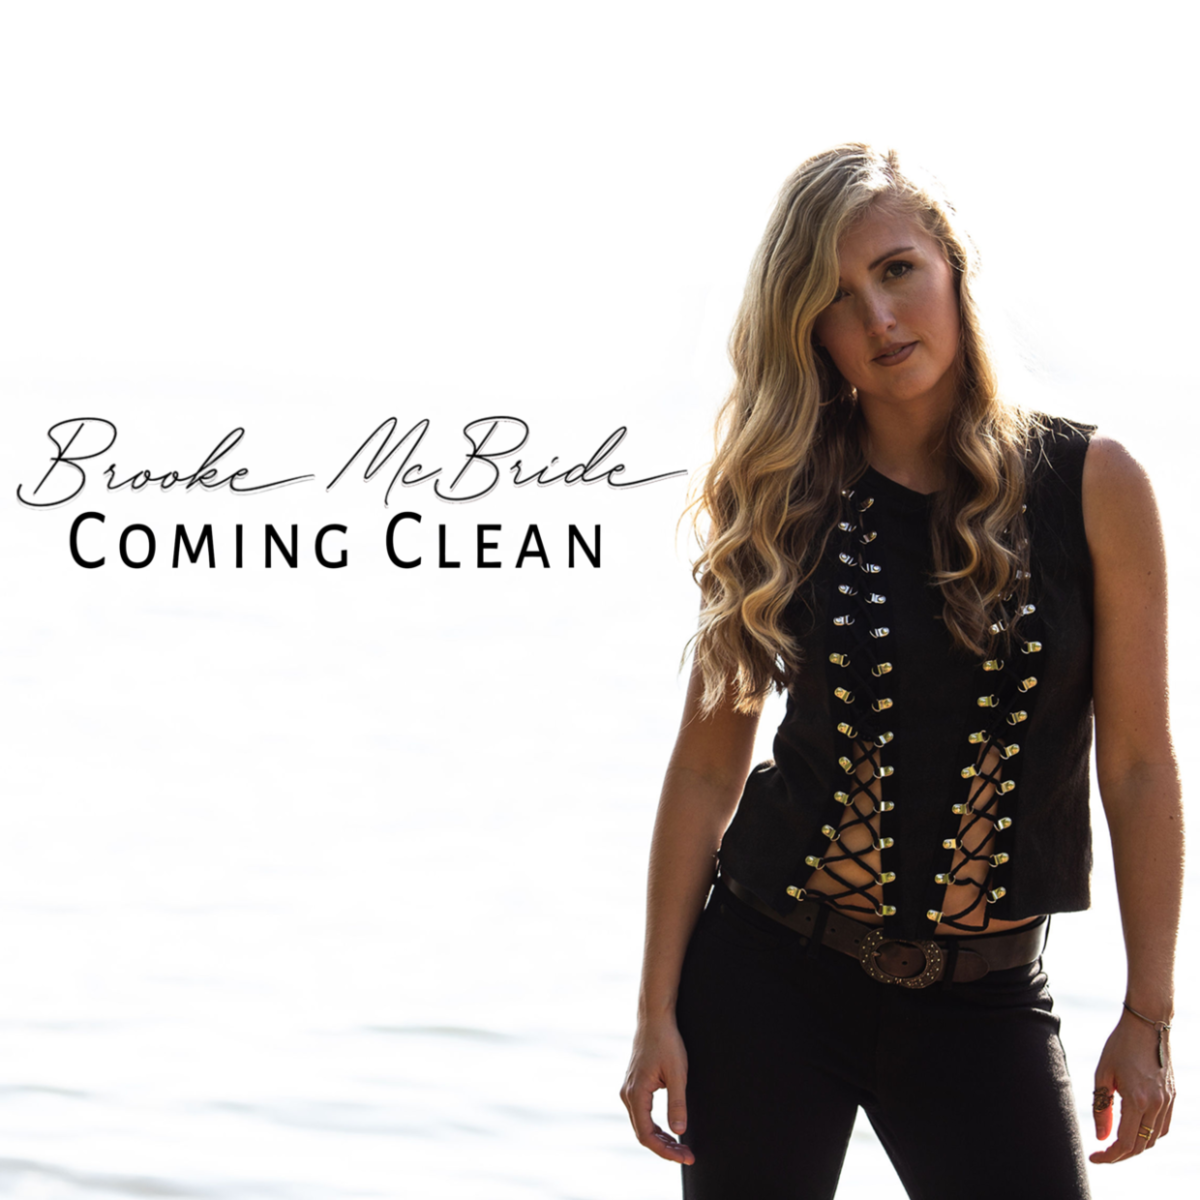 """Brooke McBride """"Comes Clean"""" with New EP Release"""